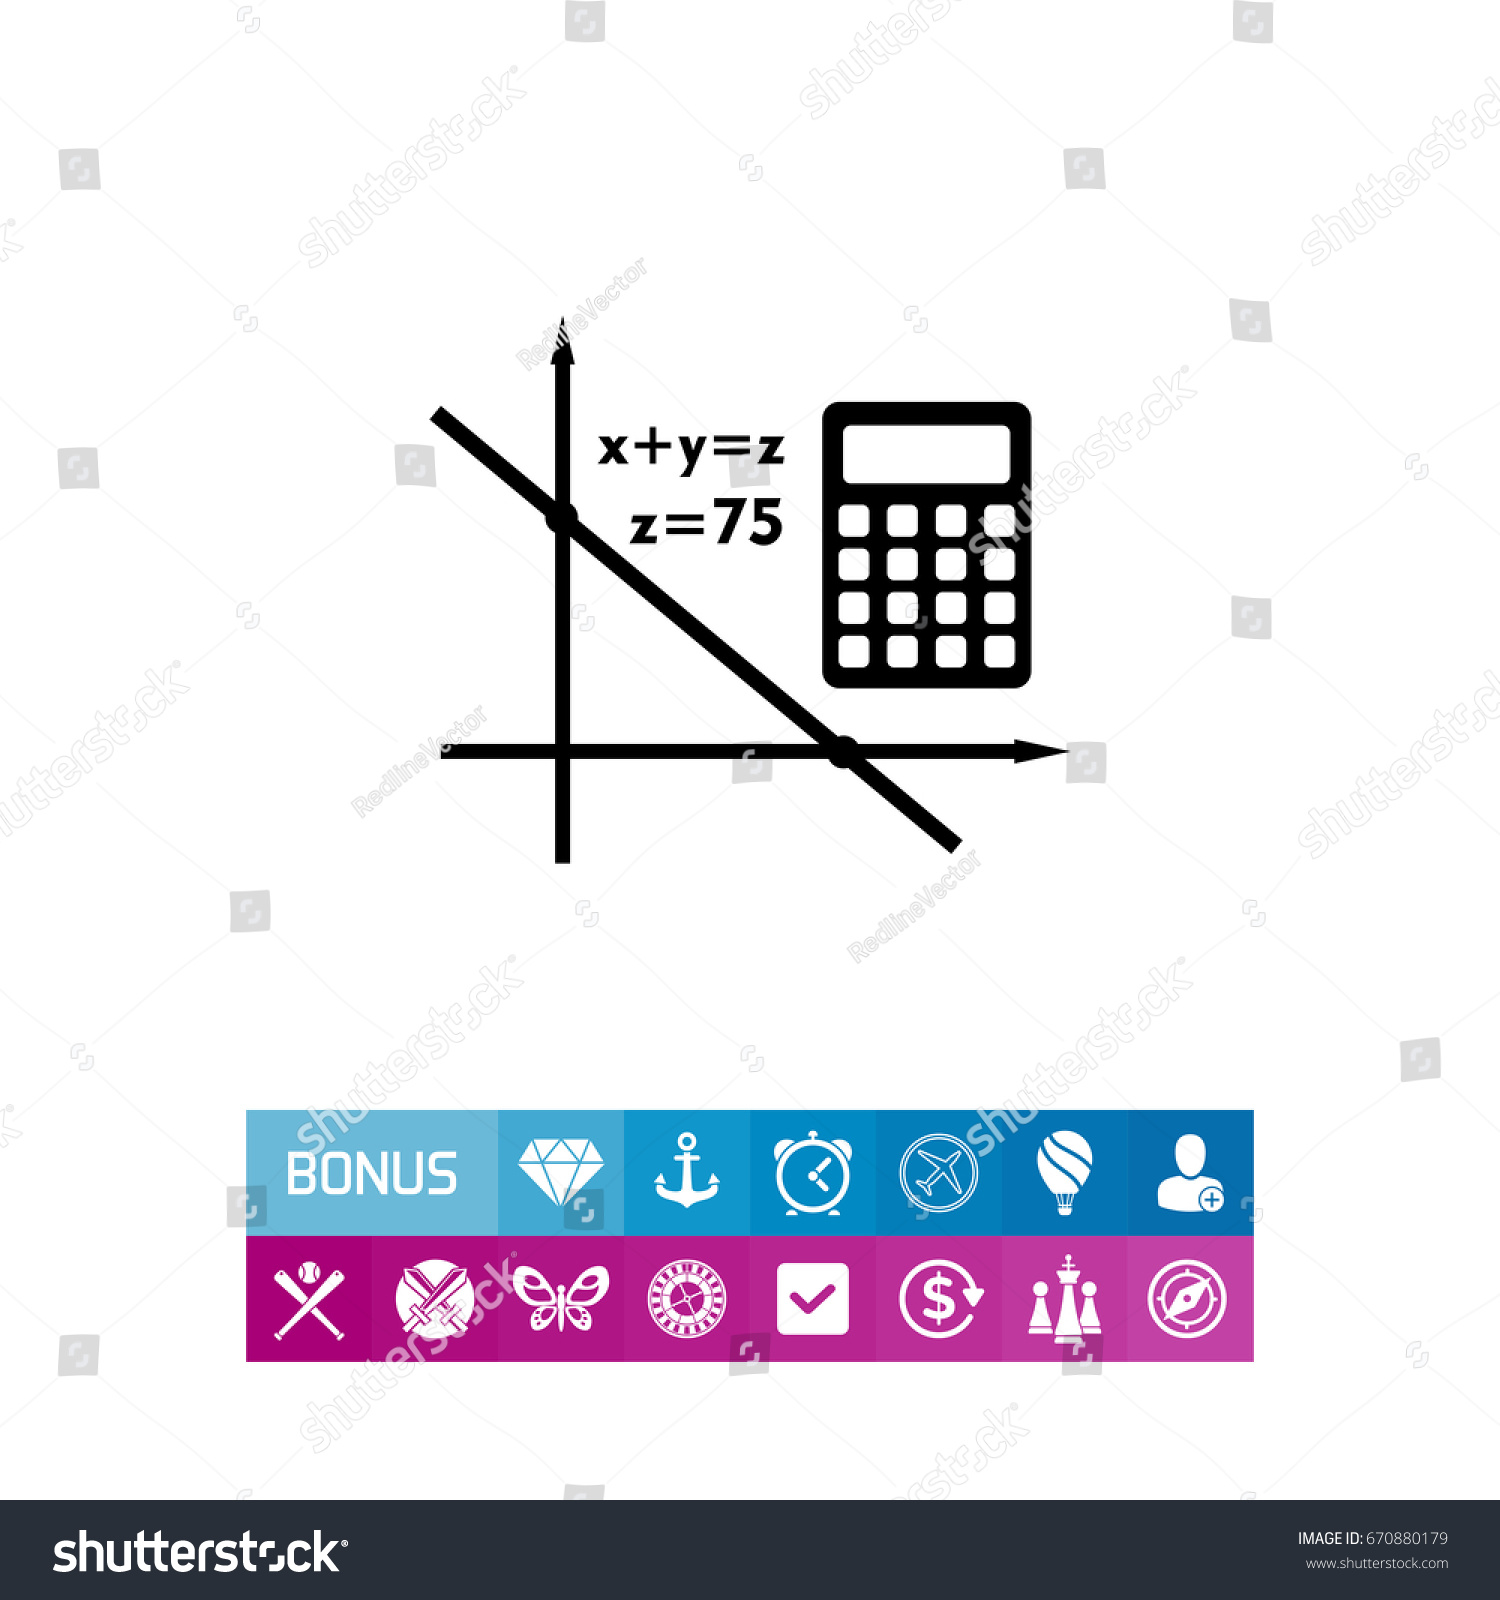 Algebra Simple Icon Stock Vector HD (Royalty Free) 670880179 ...